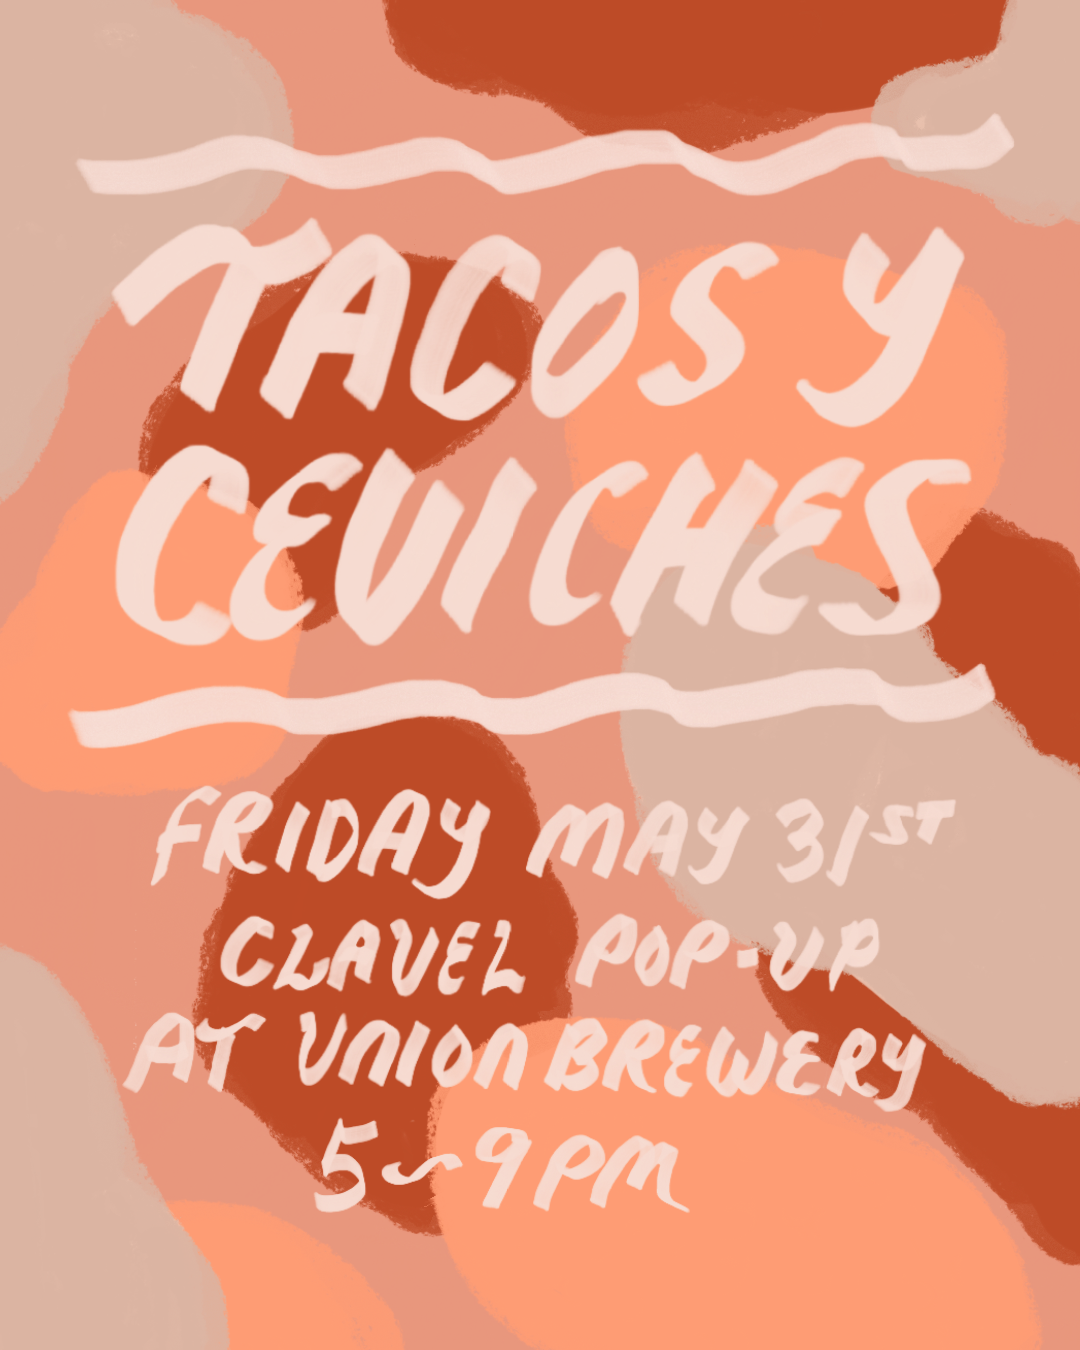 Tacos_Y_Ceviches.png